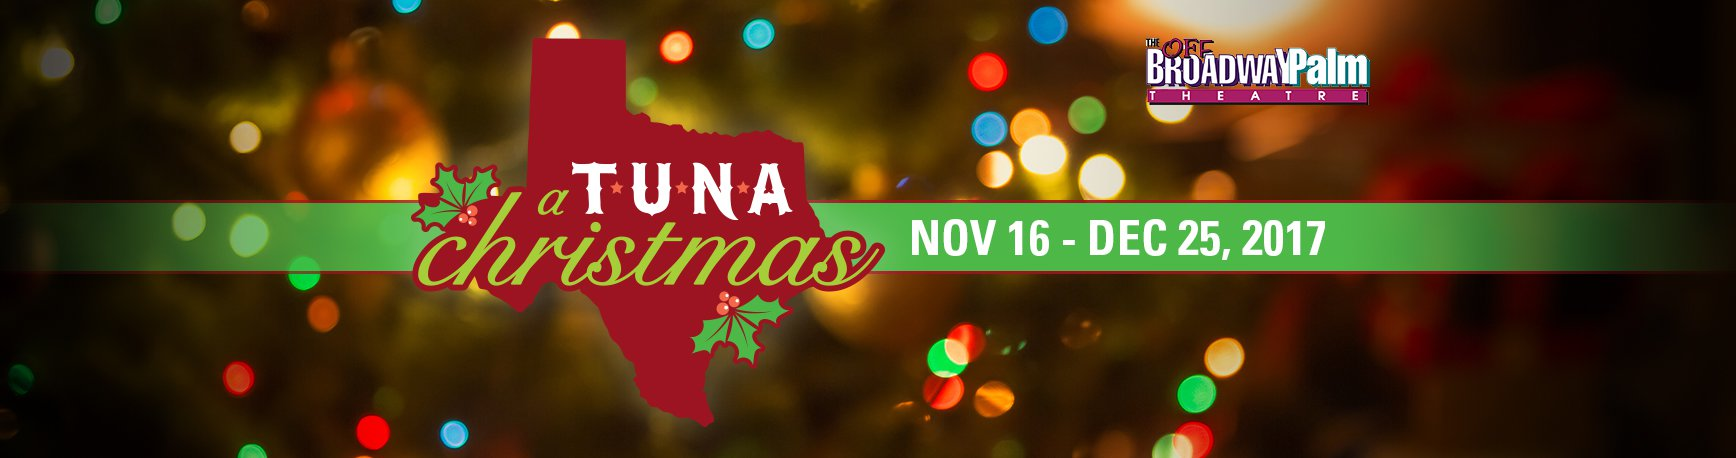 A Tuna Christmas - Broadway Palm Dinner Theatre